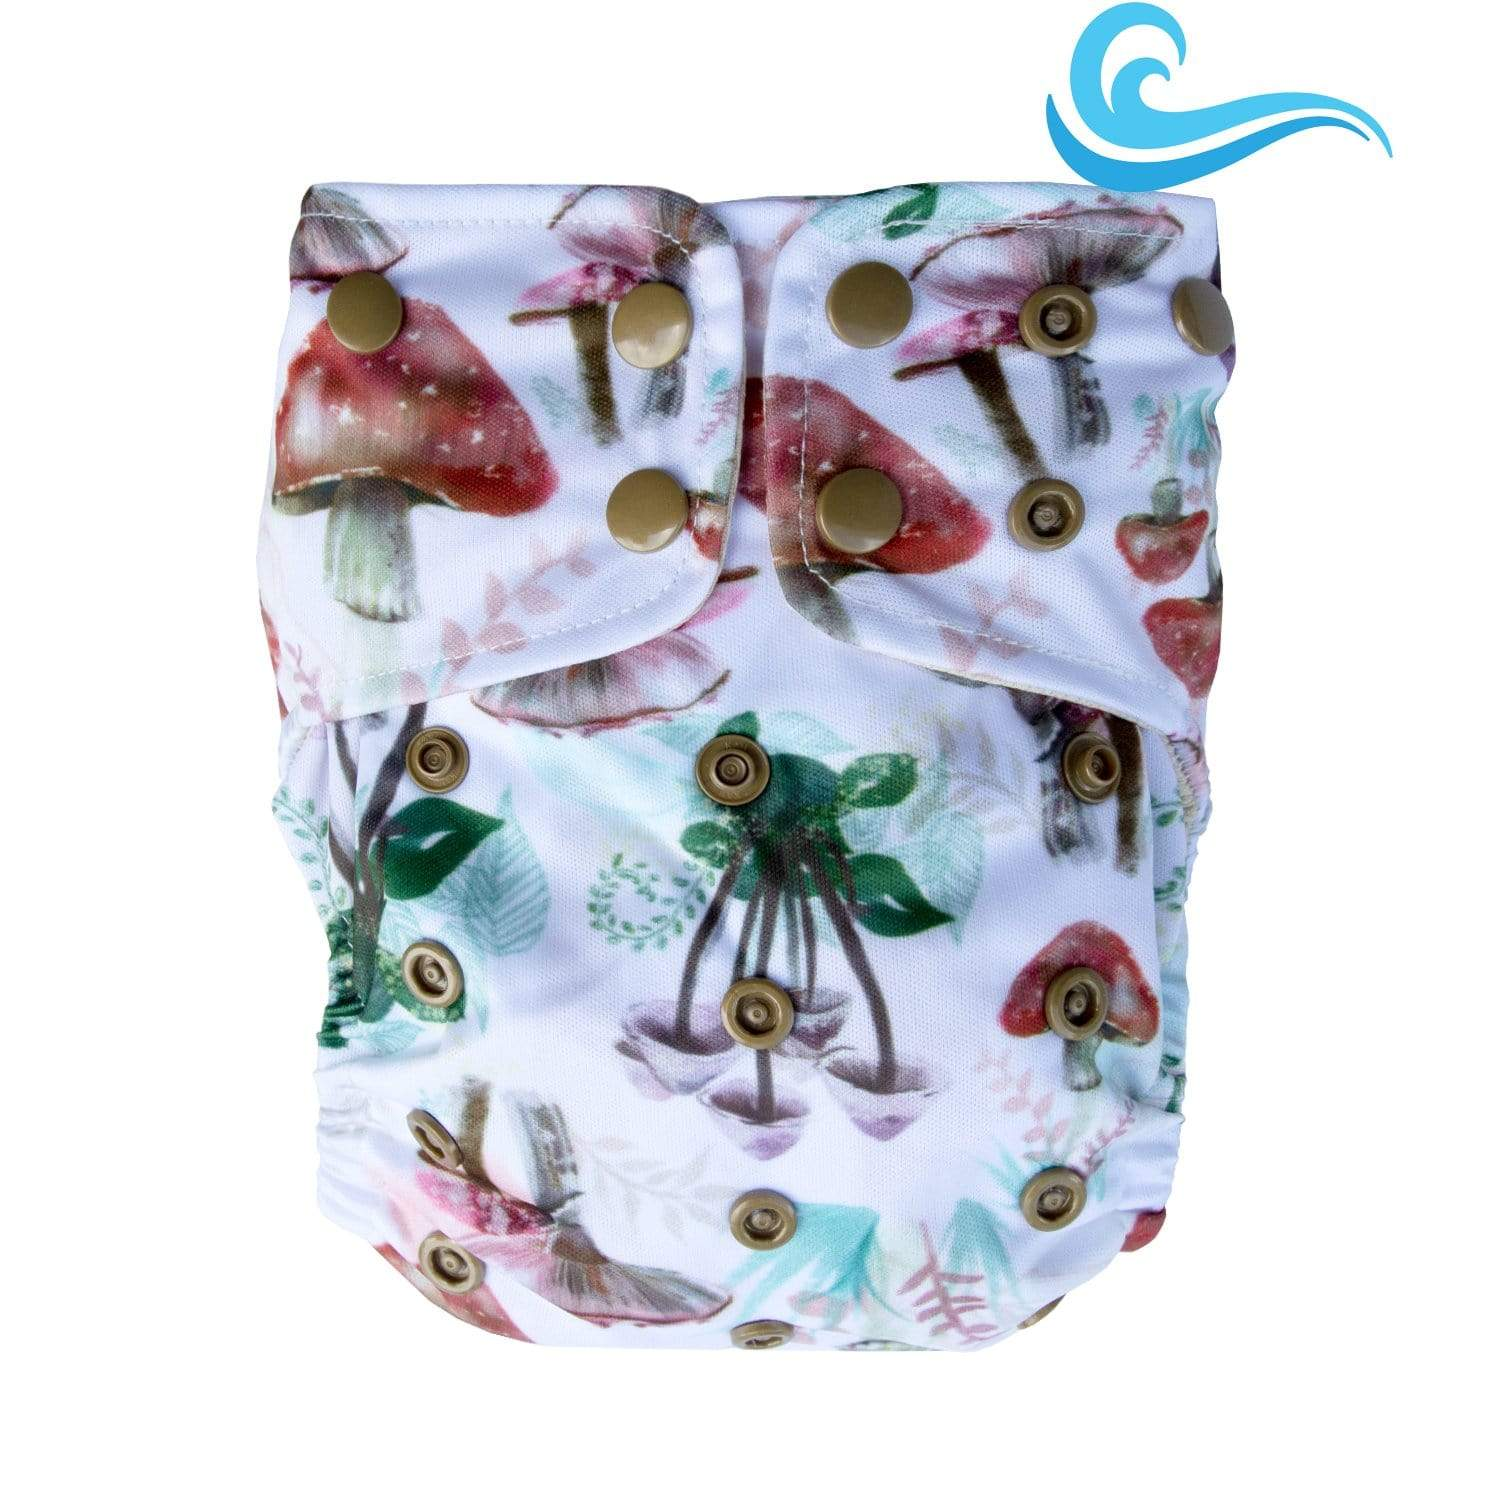 Lighthouse Kid's Company Snap Supreme Swim Diaper - Toadstool